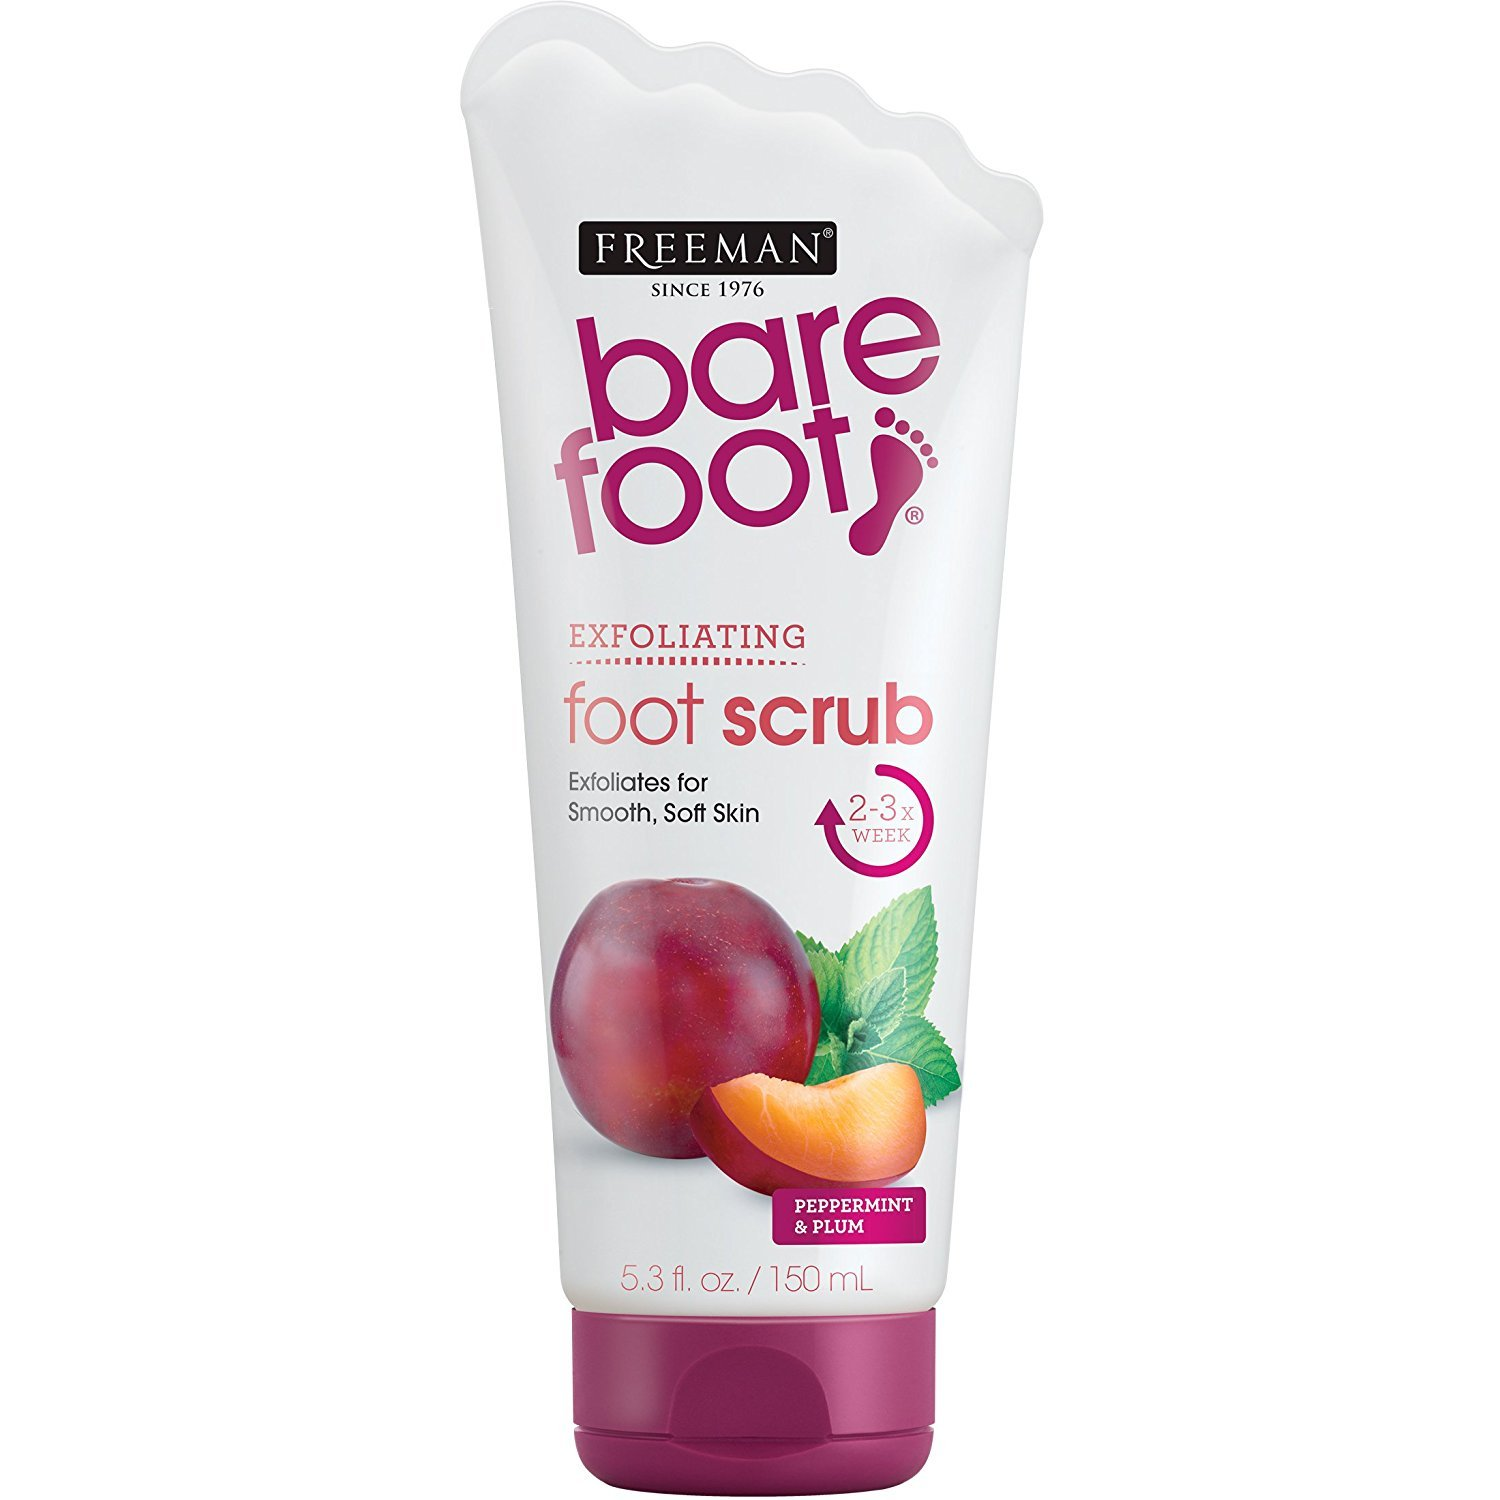 Freeman Bare Foot Exfoliating foot scrub Peppermint and Plum 5.3 oz ( Packs of 6) by Freeman